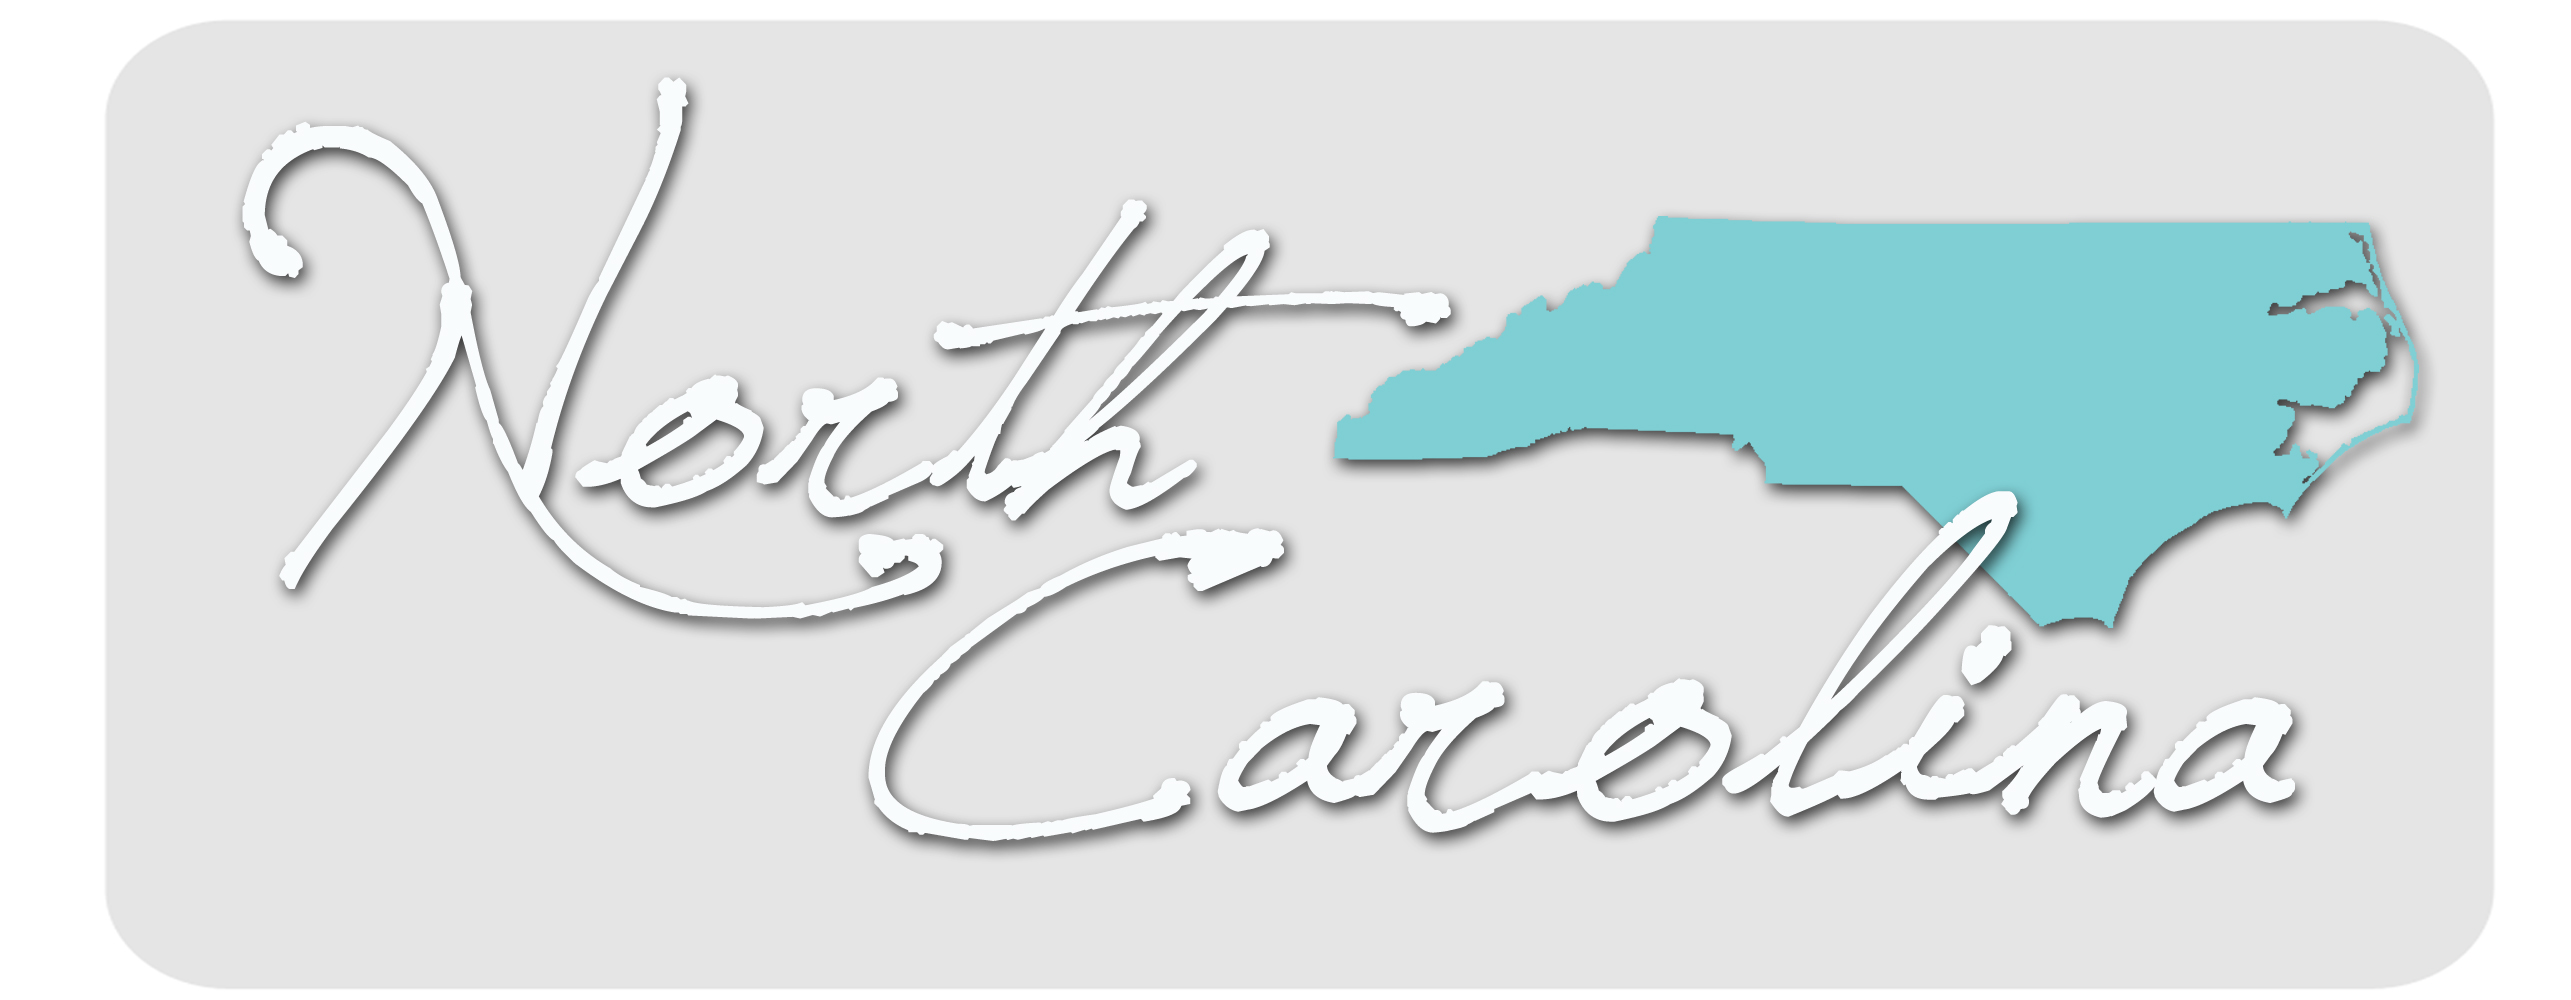 North Carolina health insurance